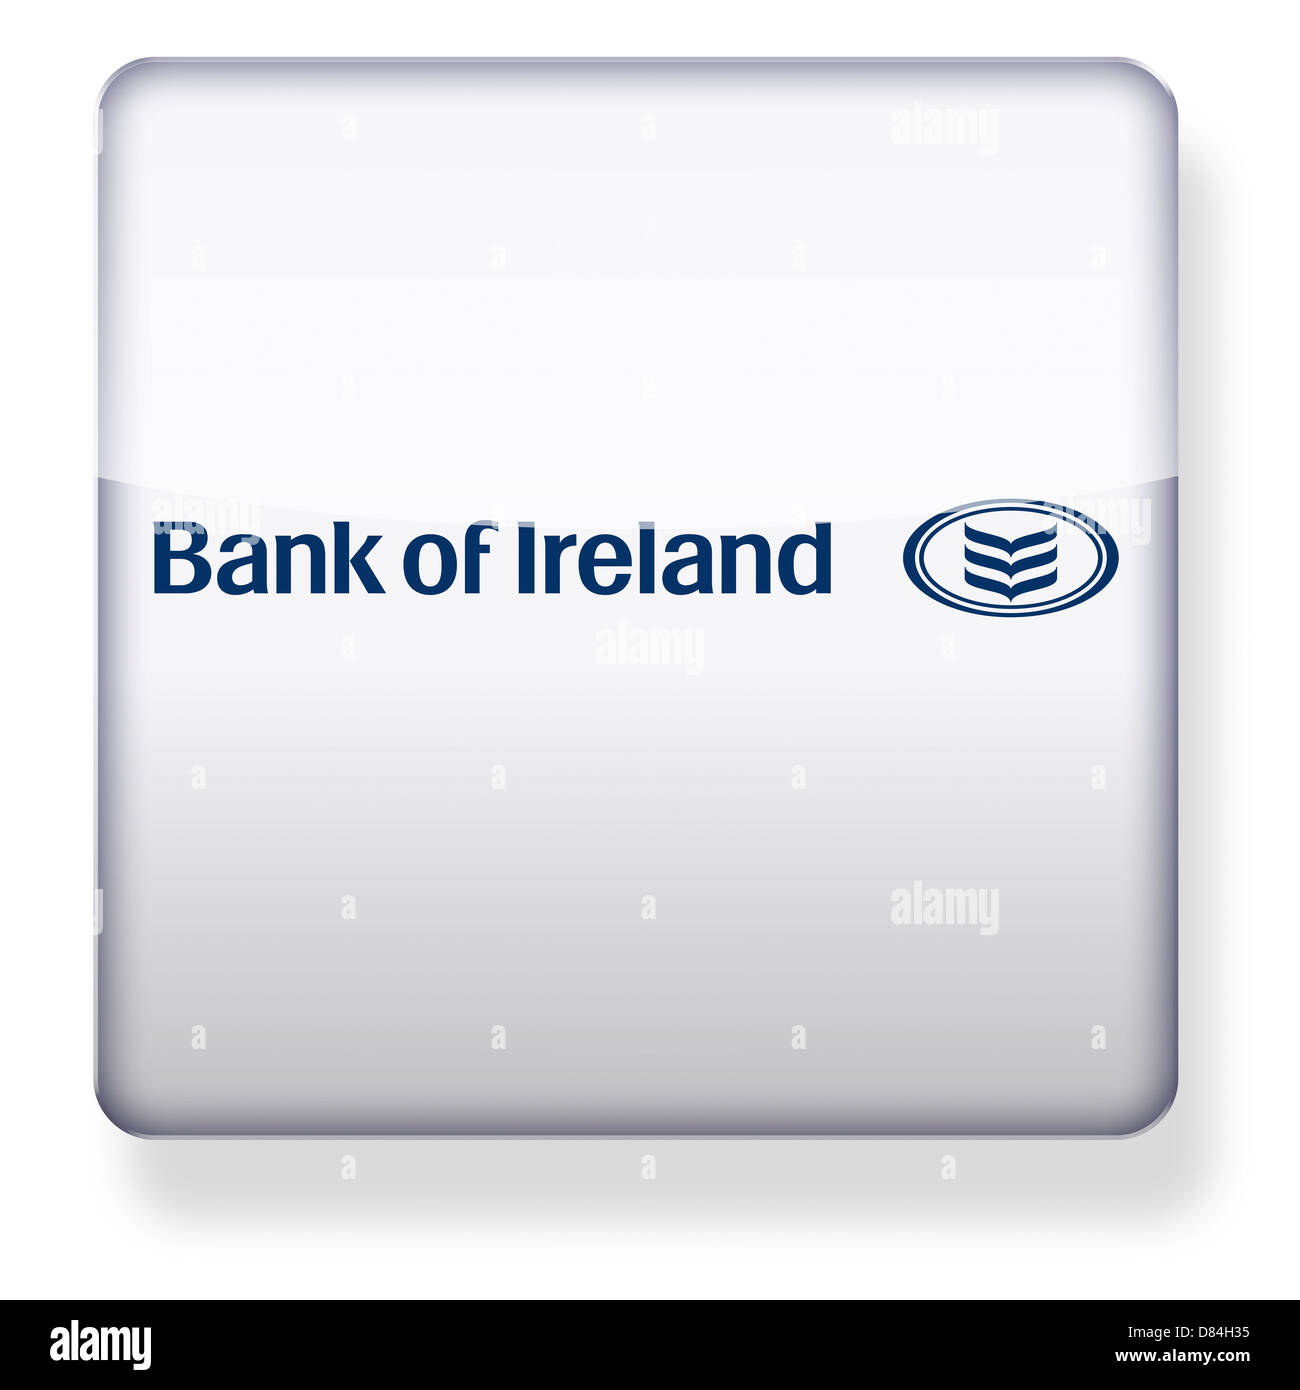 Bank of Ireland logo as an app icon. Clipping path included. - Stock Image